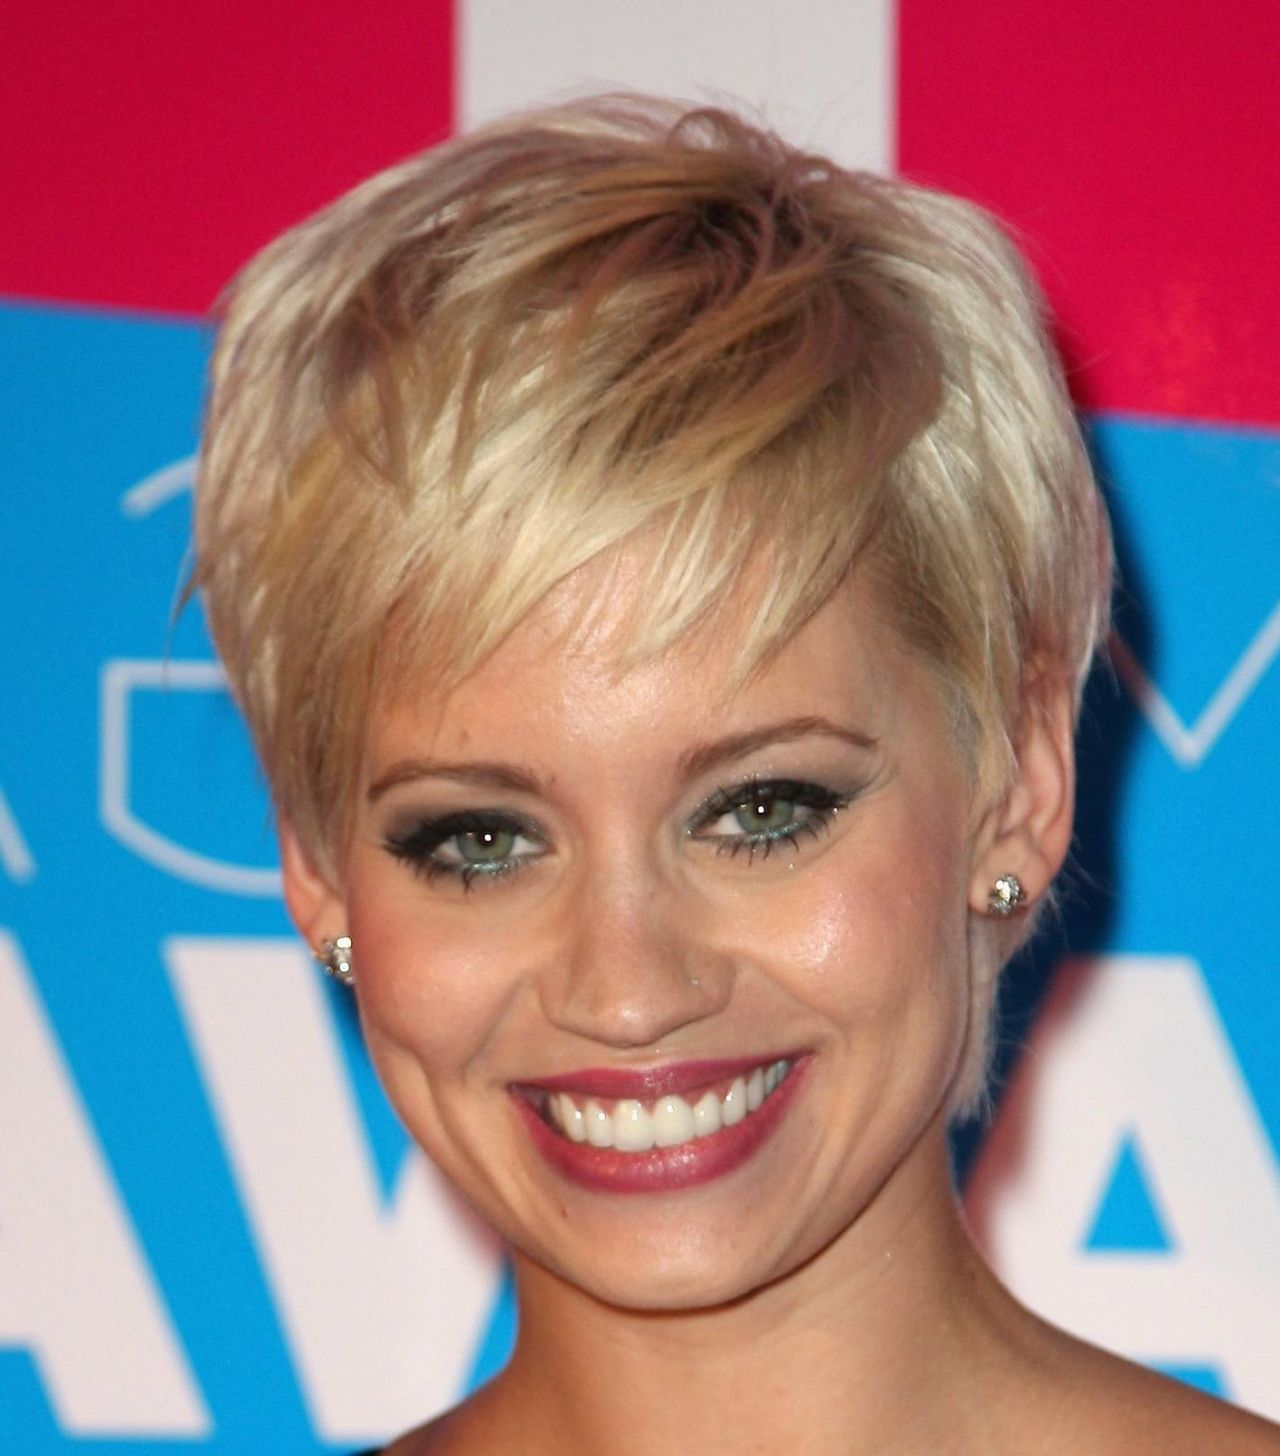 Hairstyles 2014 Short Hairstyles Round Face Simple And Quick Styling